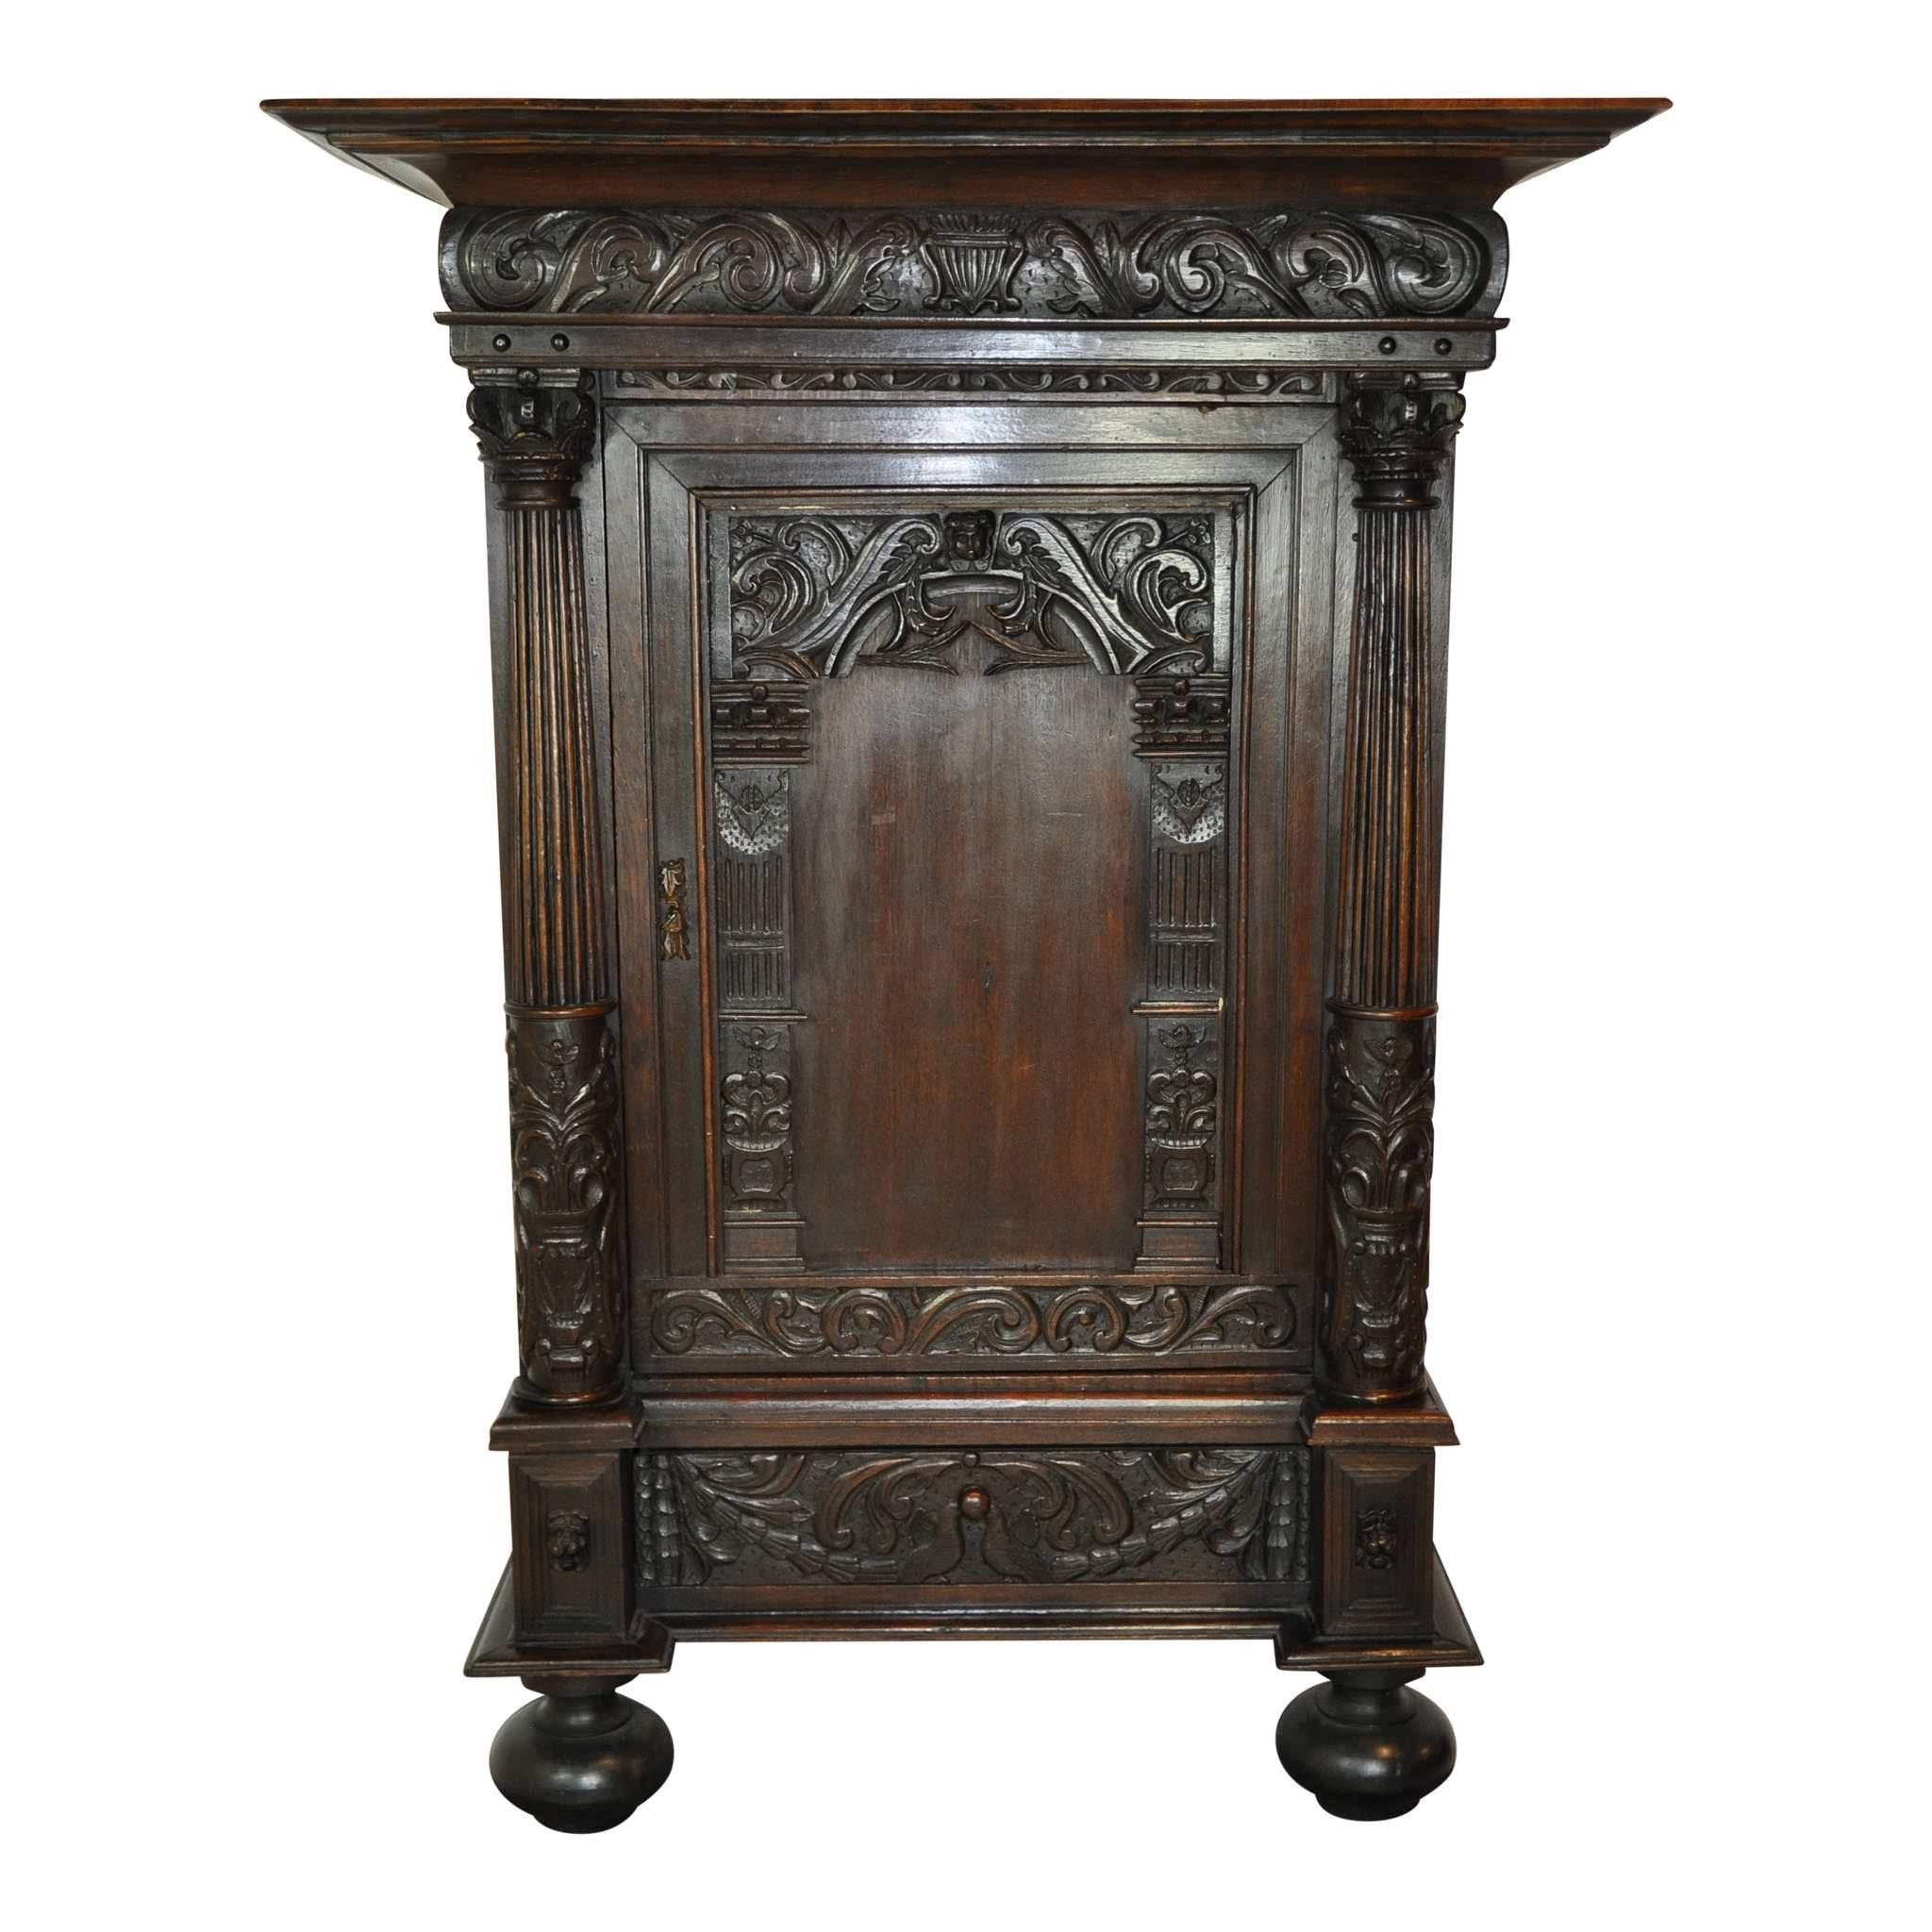 Dutch Wedding Cabinet (1stdibs)